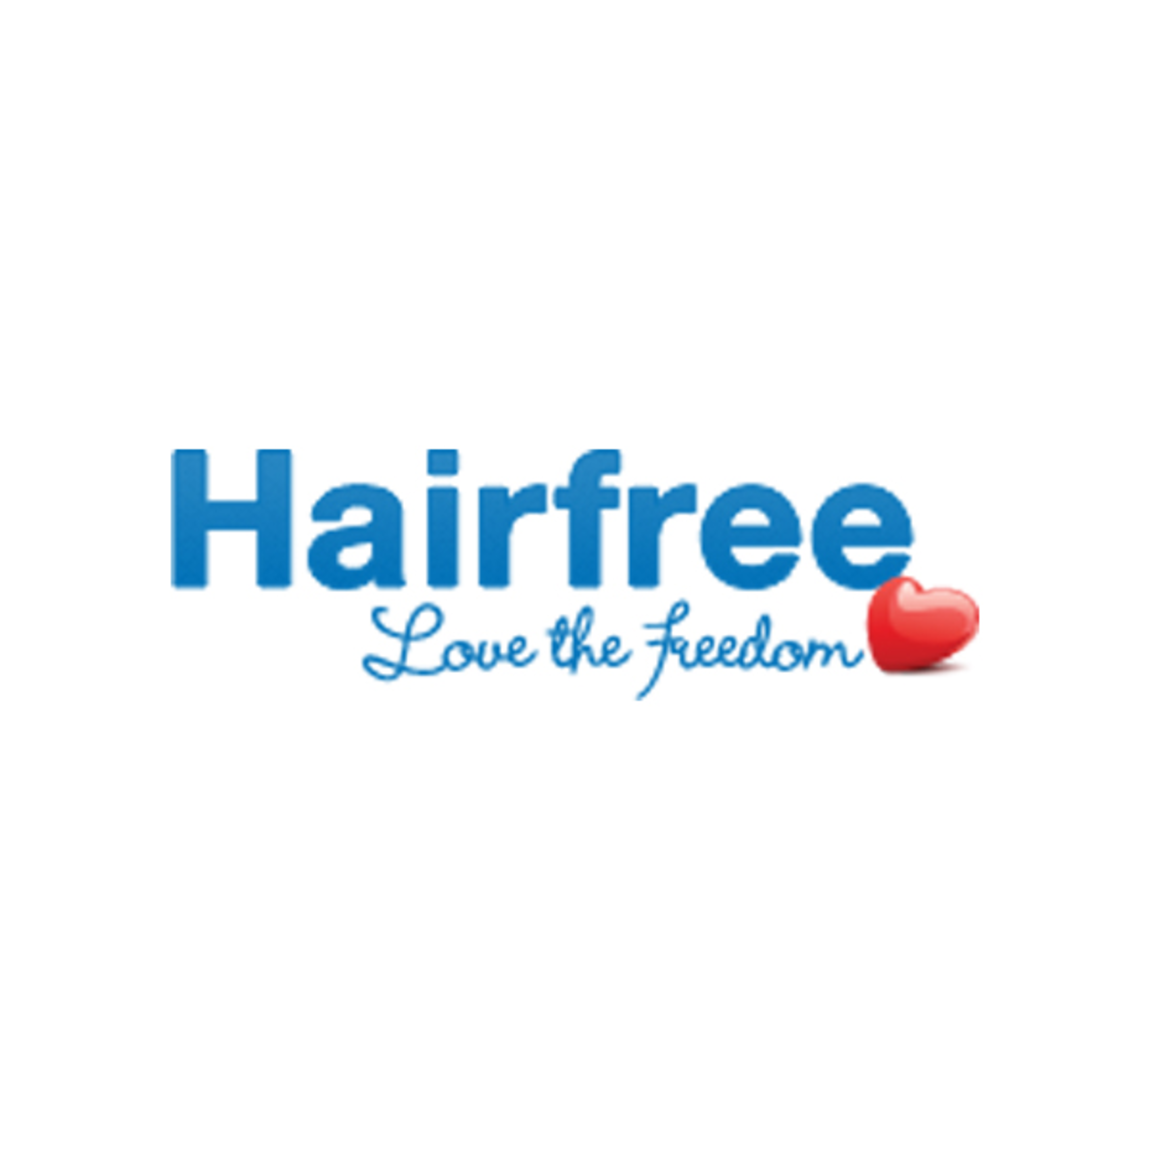 Hairfree canberra